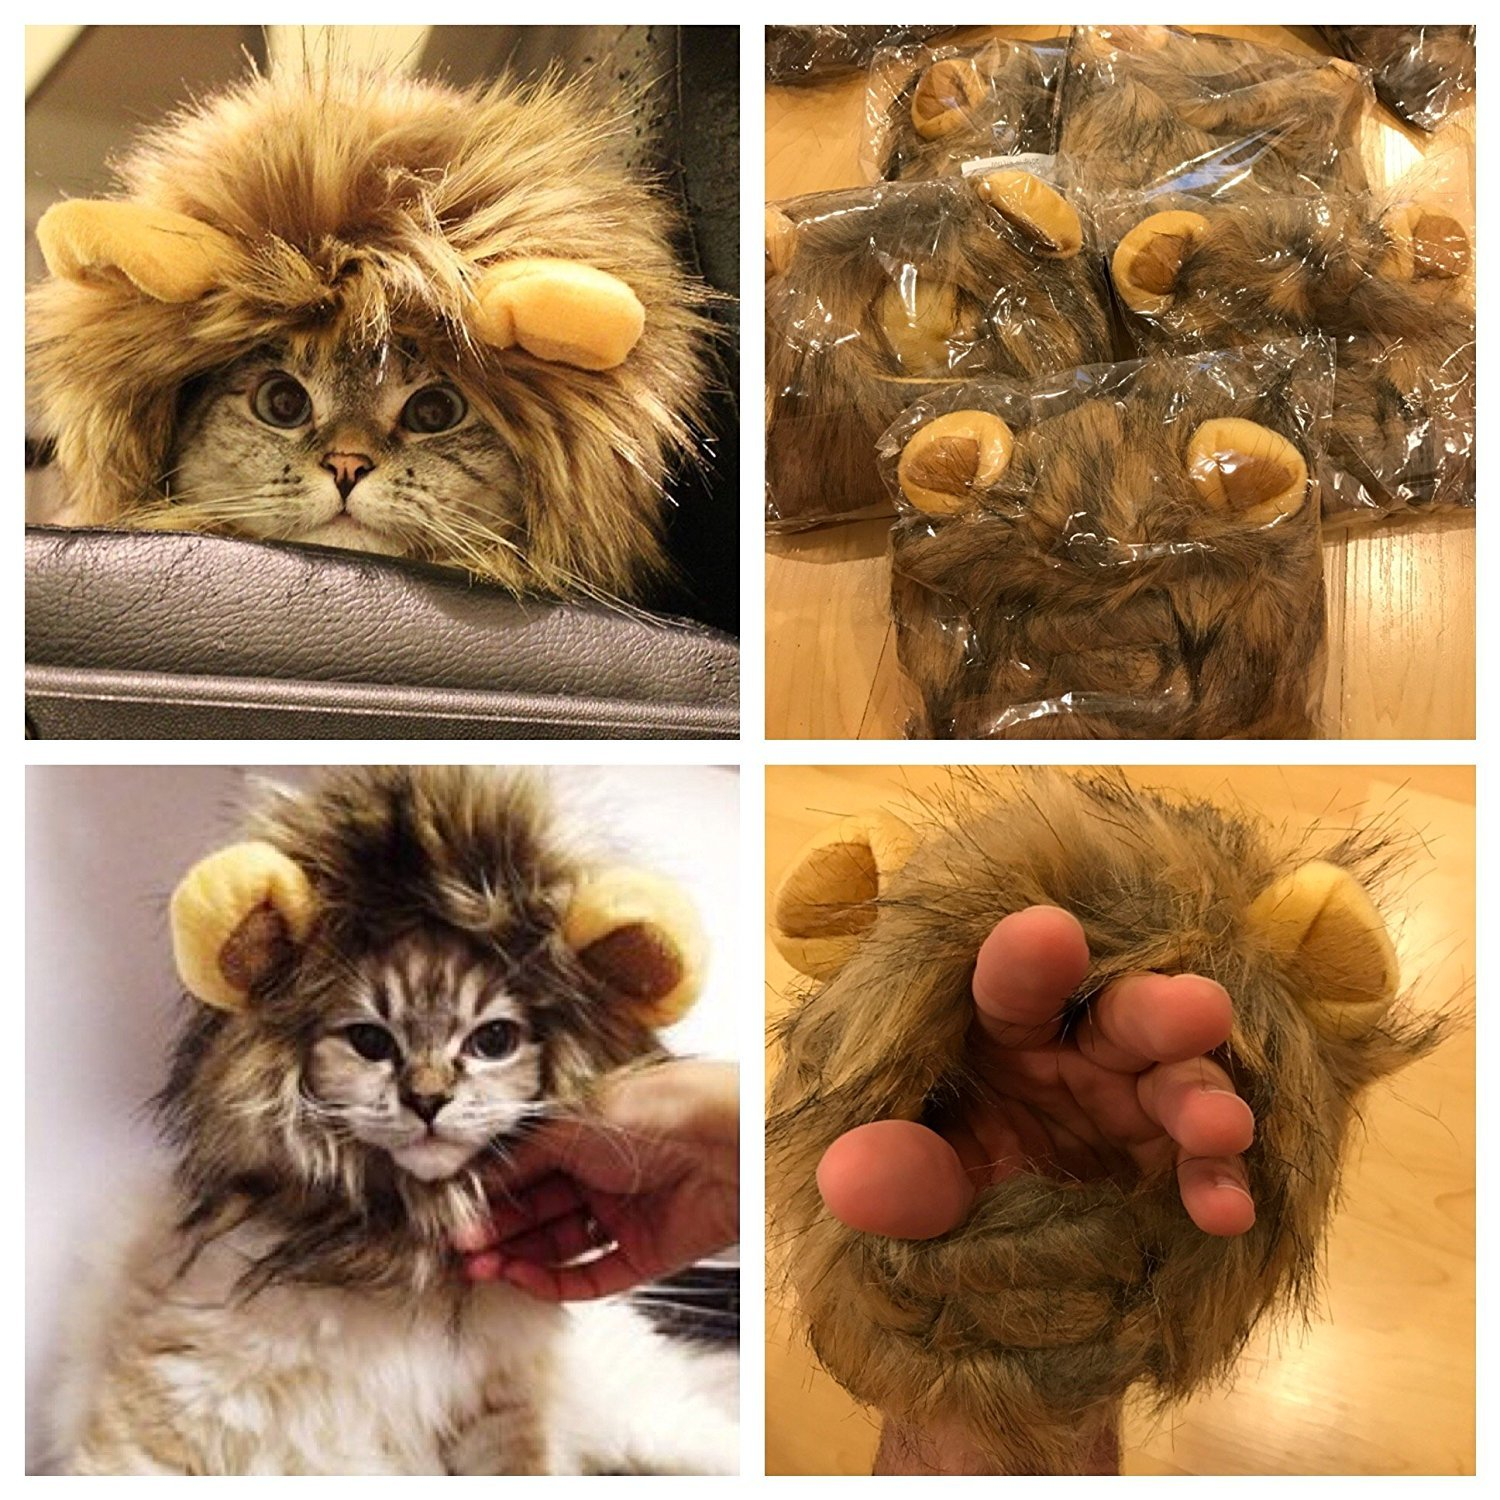 Amazon omg adorables lion mane costume for cats soft furry amazon omg adorables lion mane costume for cats soft furry pet wig with cute ears fits adult felines and small dogs pet friendly clothing solutioingenieria Gallery